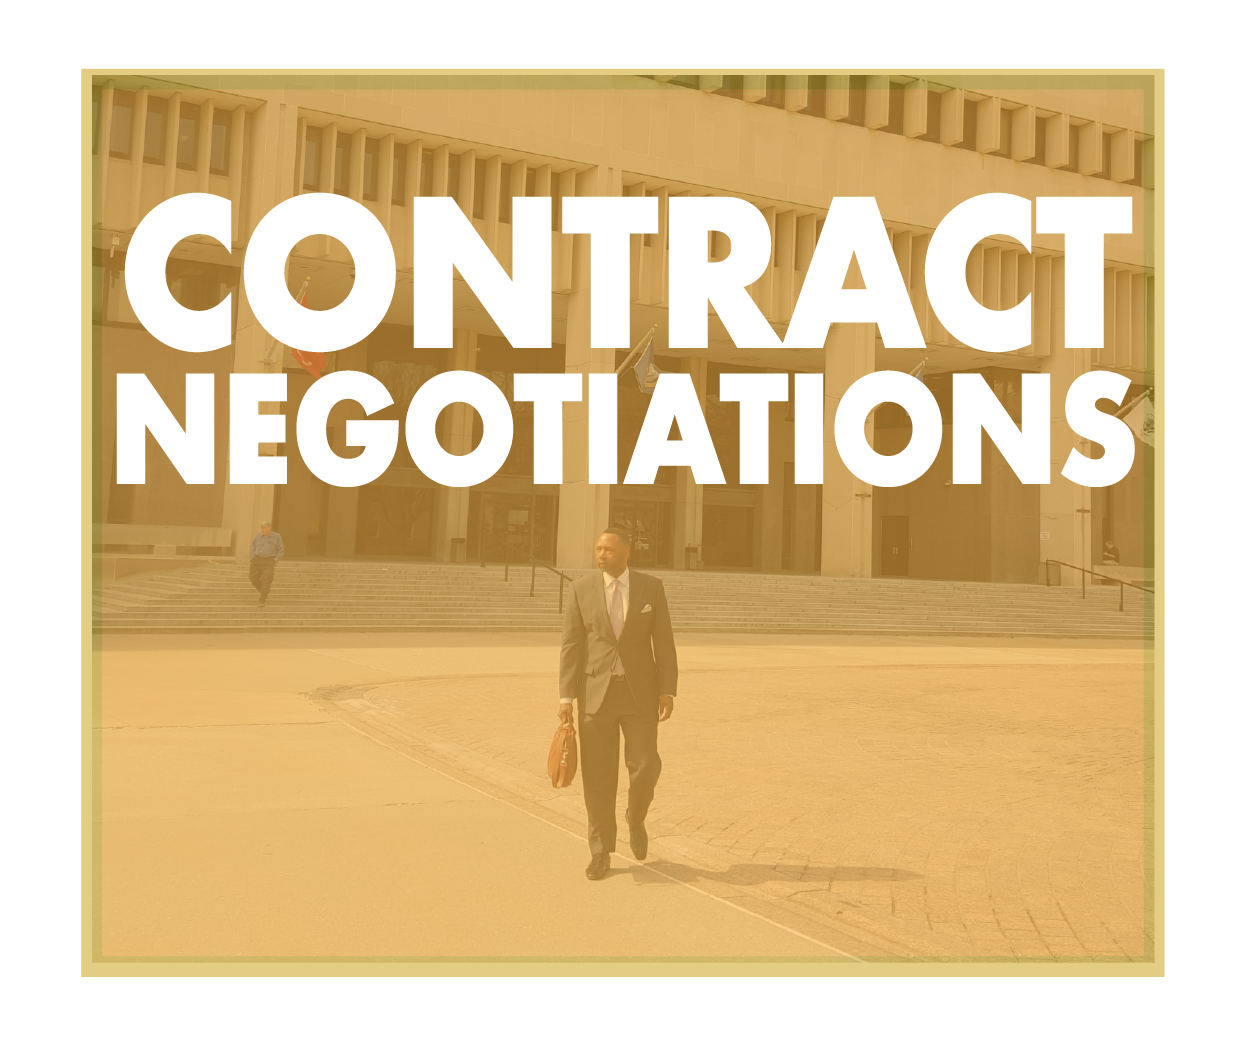 Web_CONTRACT NEGOTIATIONS CourtWalk-01